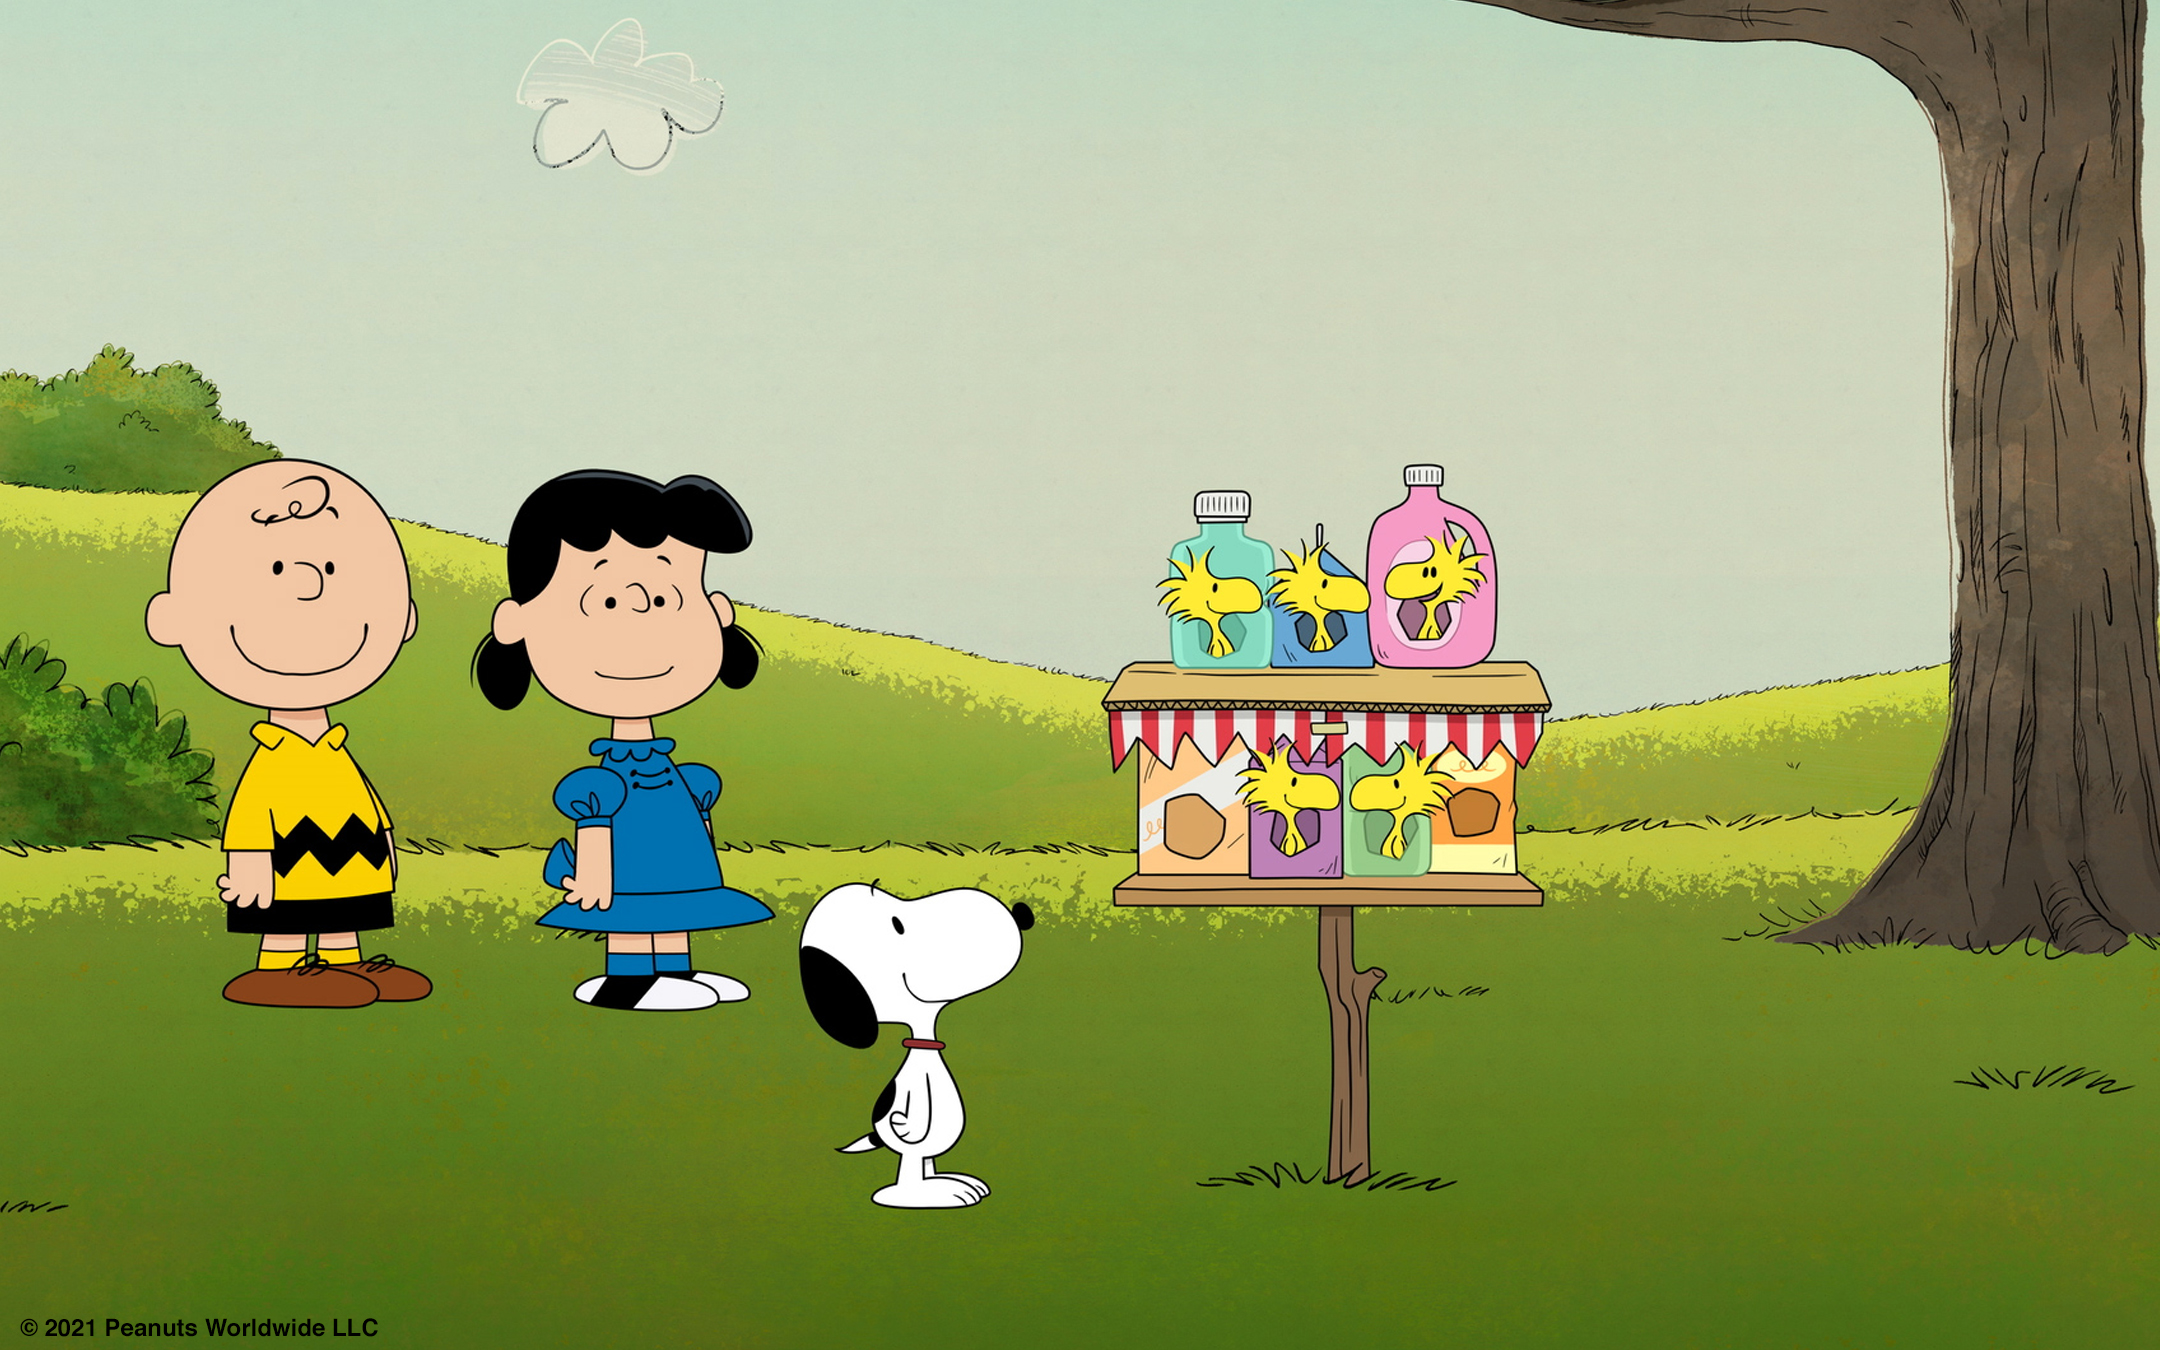 The Peanuts gangs looks fondly at a new birdhouse made of recycled materials